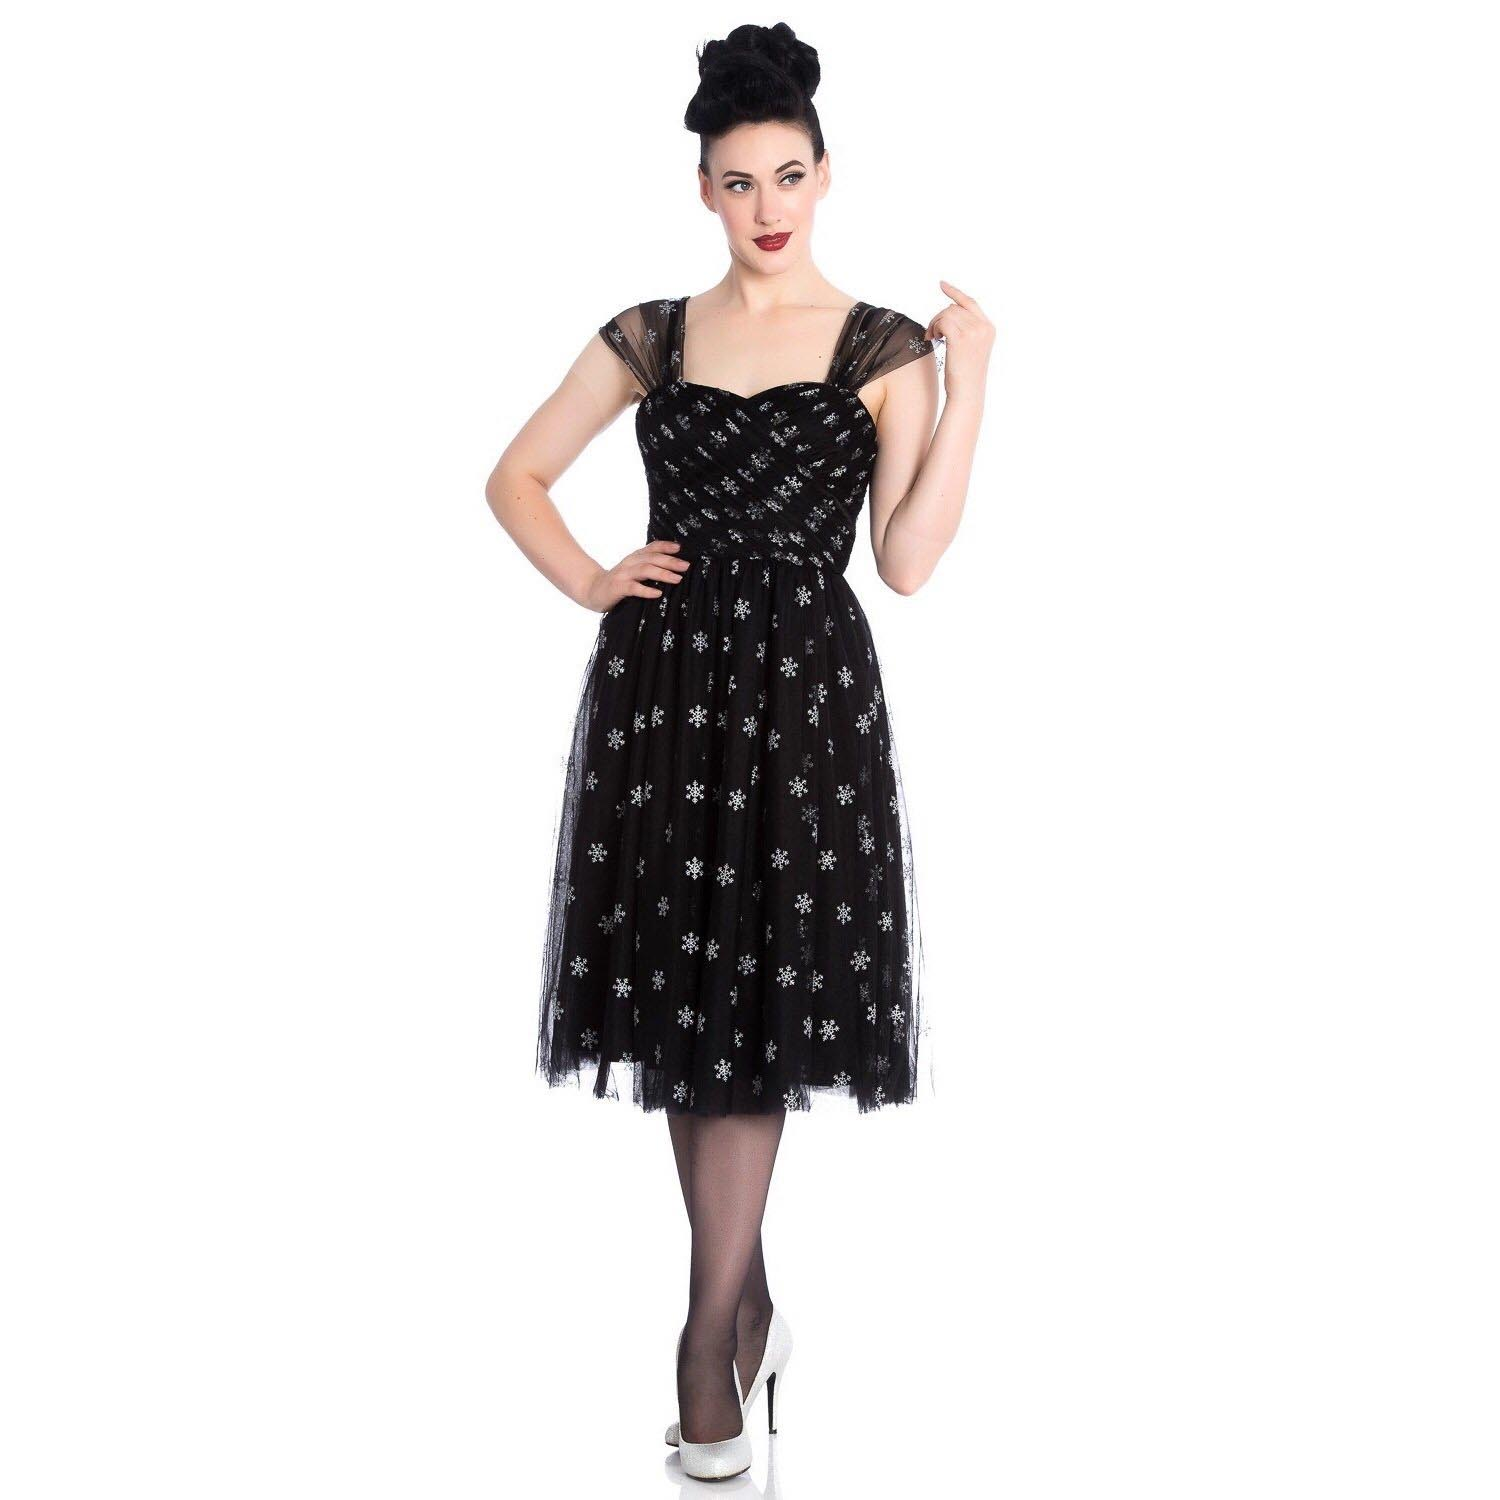 Hell-Bunny-50s-Black-Christmas-Dress-SNOWSTAR-Glitter-Snowflakes-All-Sizes thumbnail 23